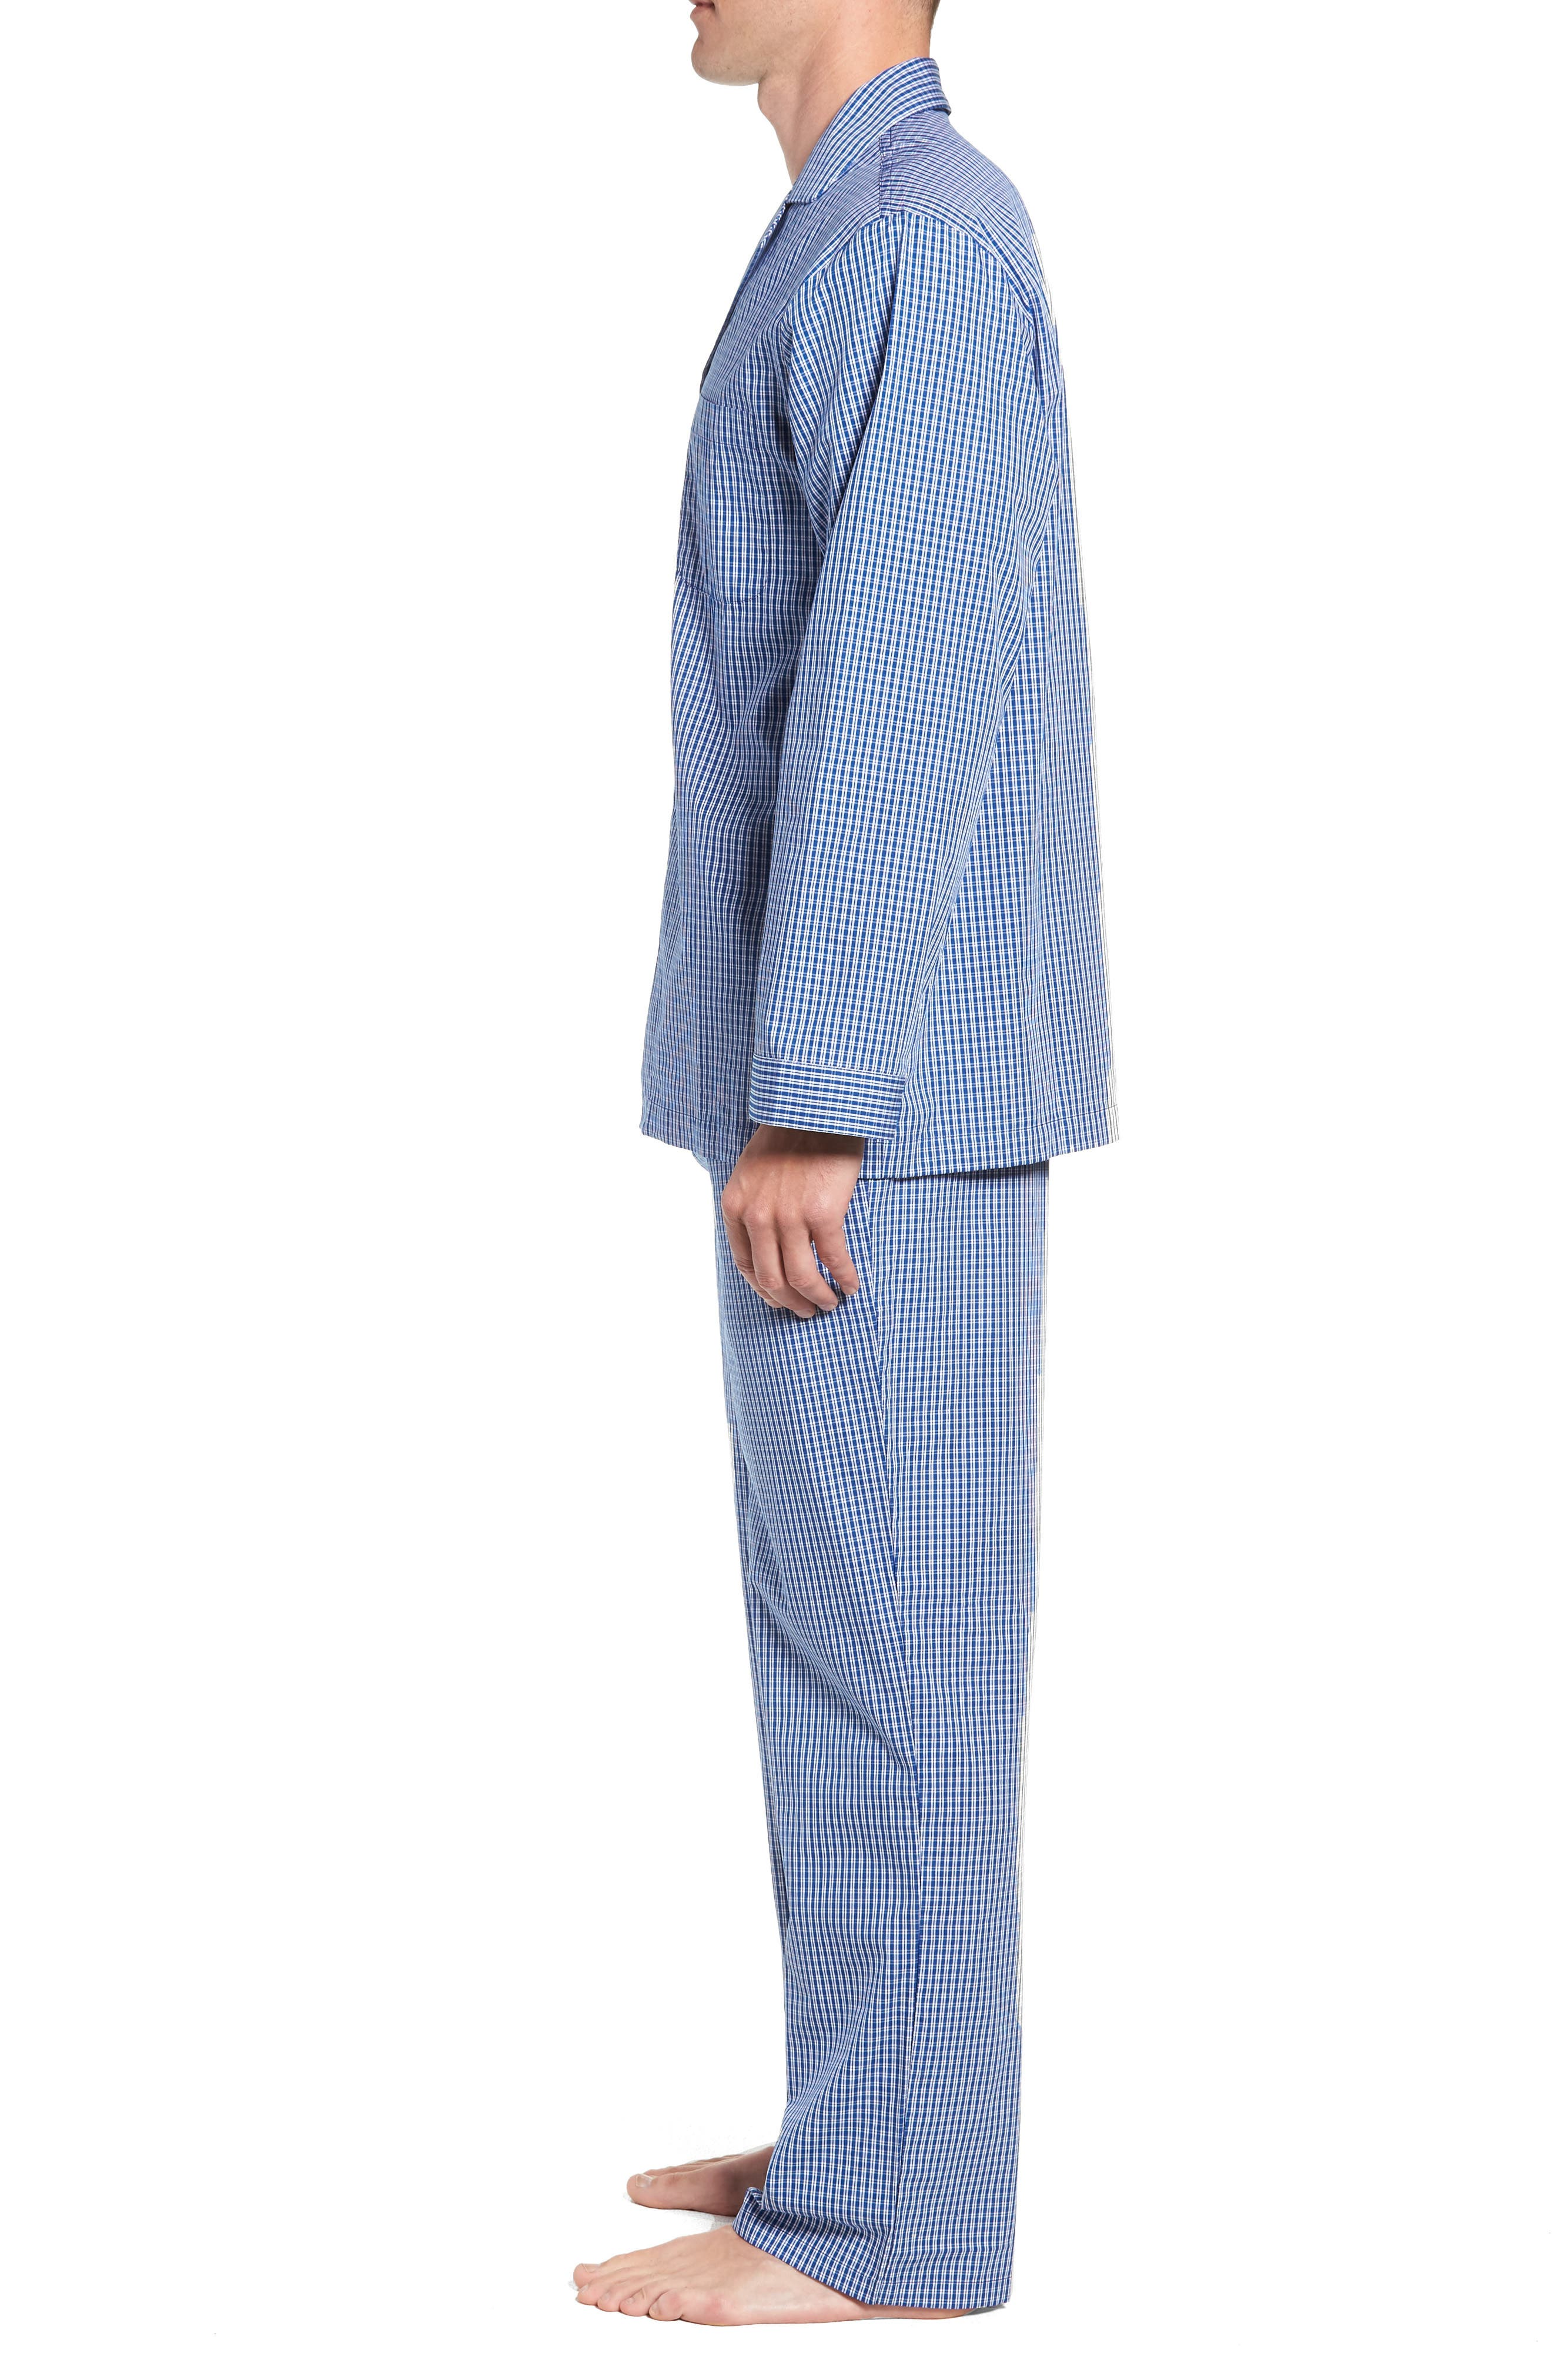 Poplin Pajama Set,                             Alternate thumbnail 3, color,                             BLUE DEEP MICRO CHECK